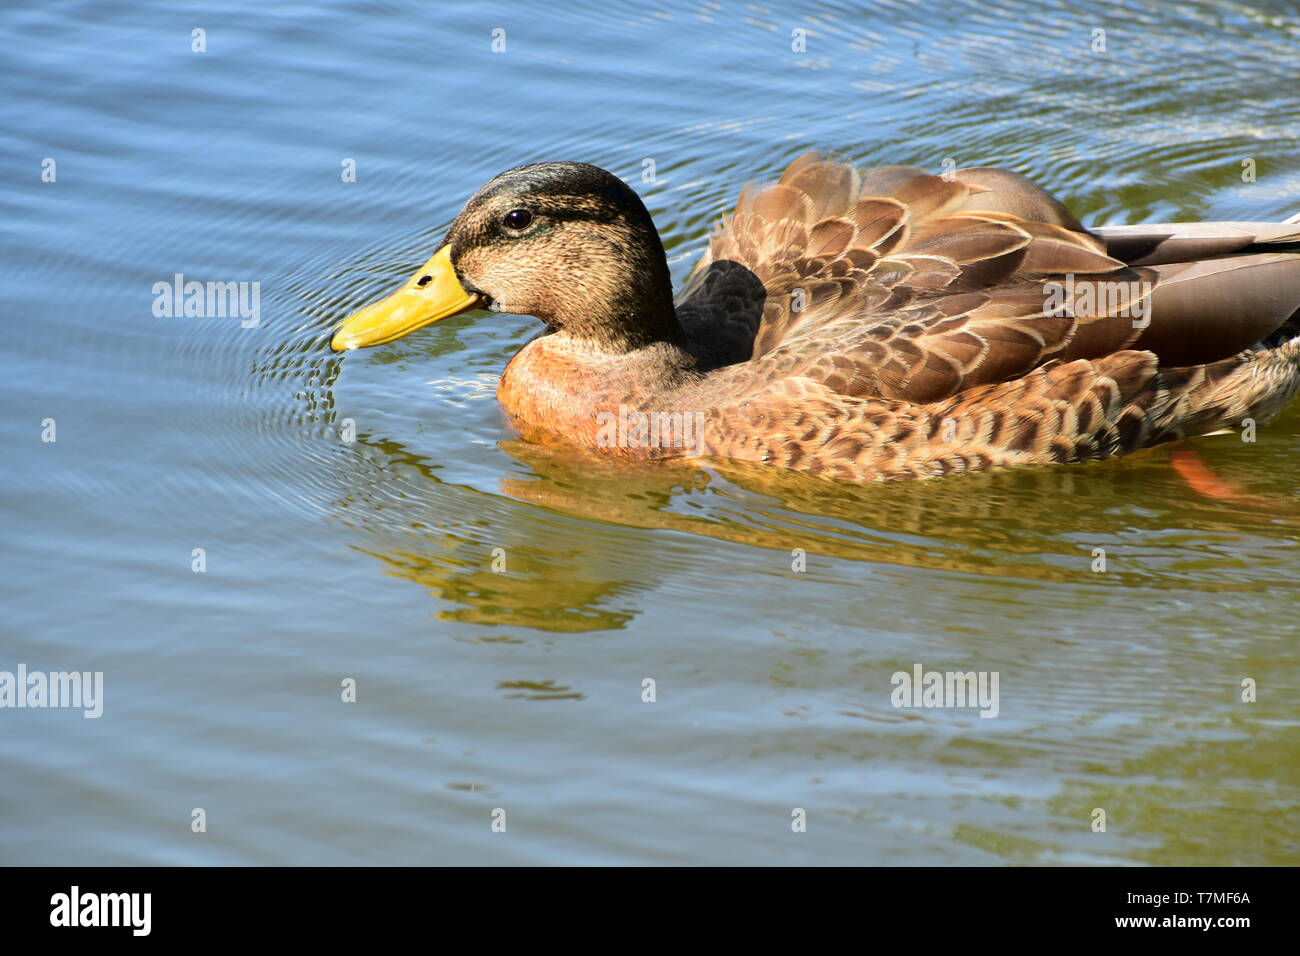 Wild duck on the water. Extremely close up telescopic lens. Beautiful sunny day. - Stock Image